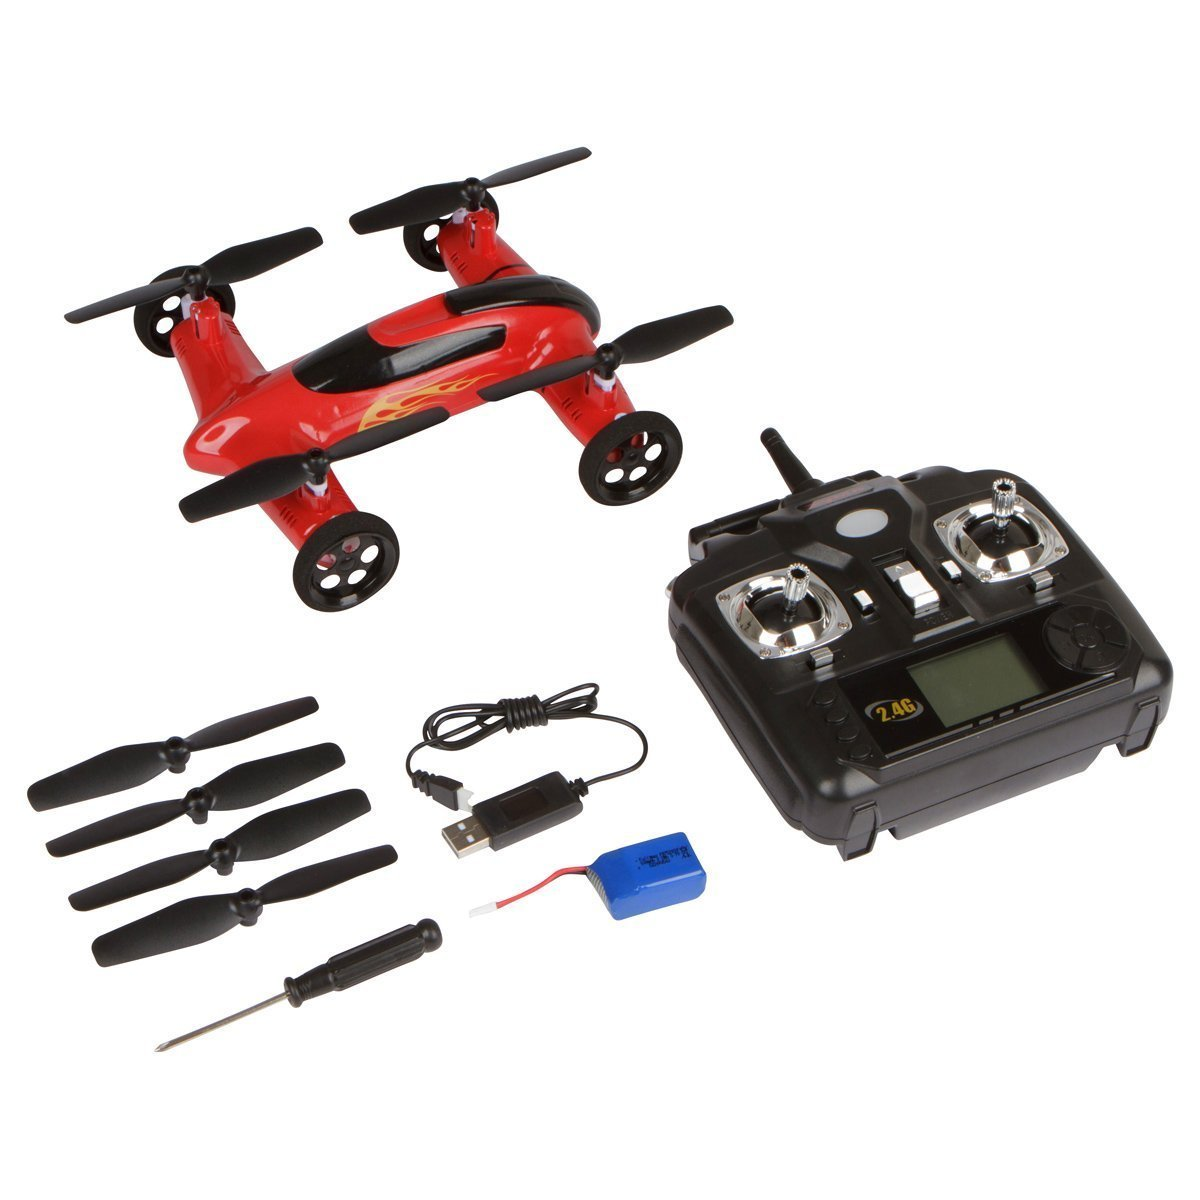 Flying Rc Car For Sale